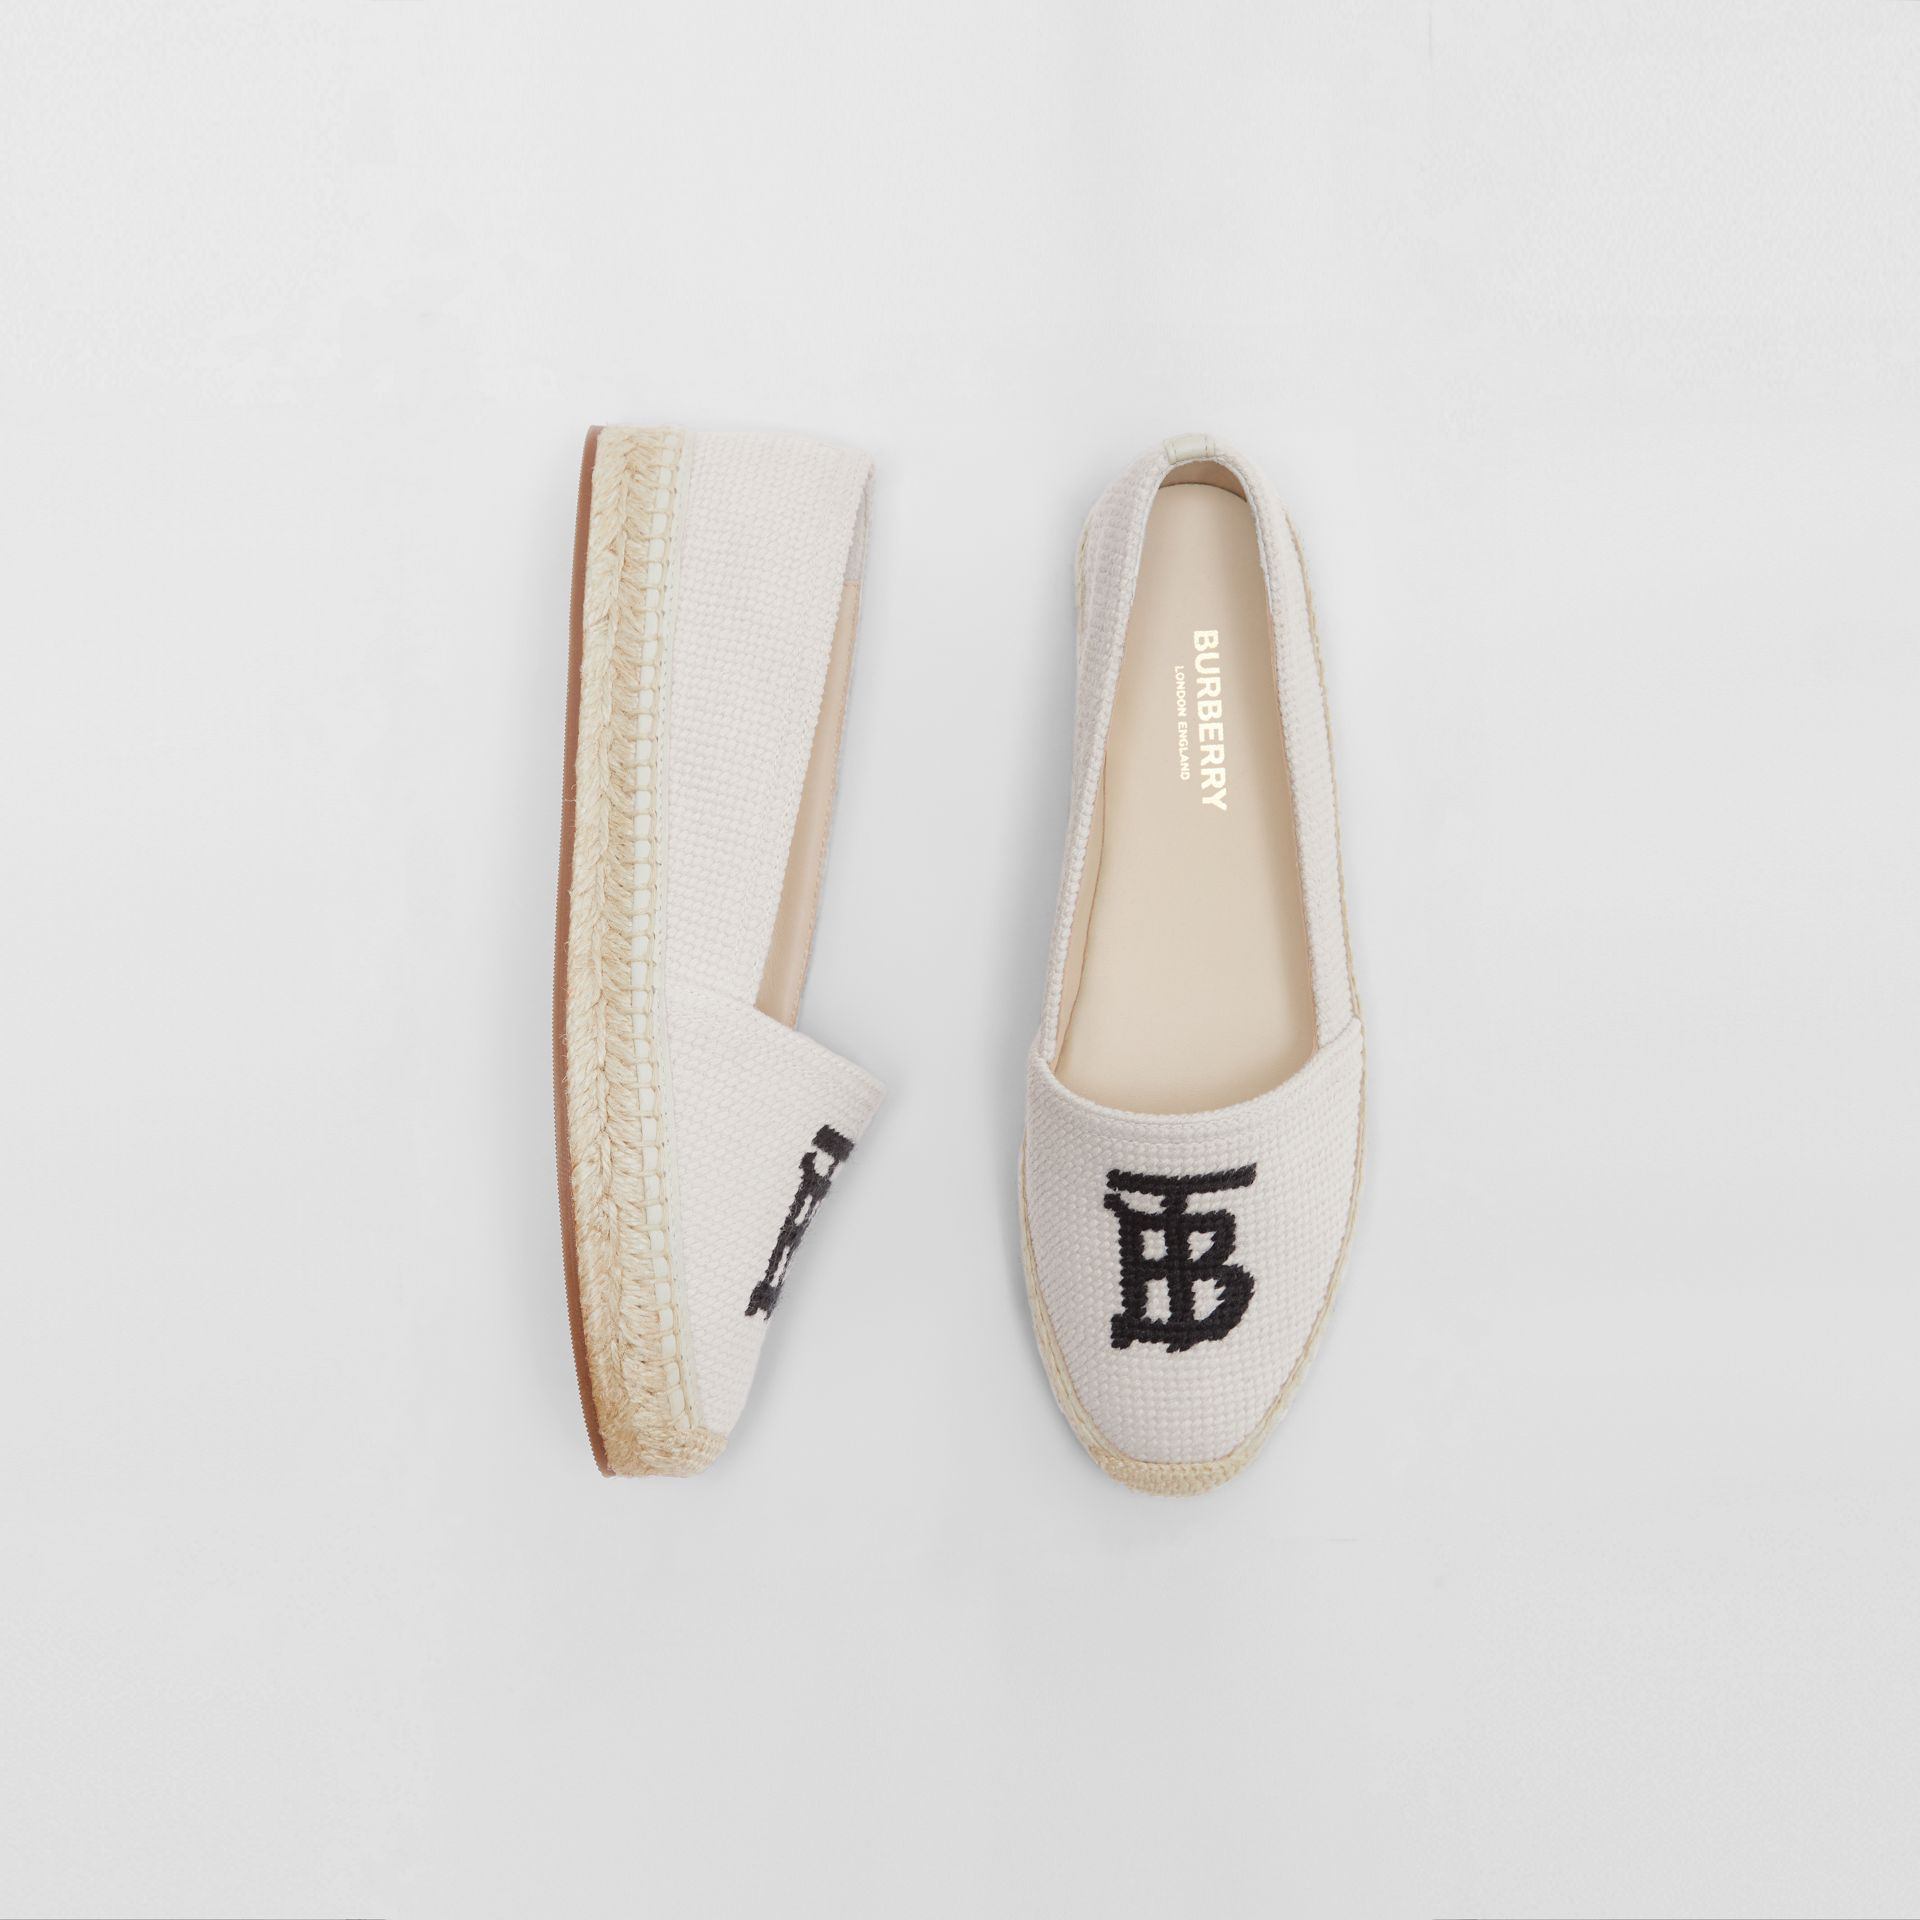 Monogram Motif Cotton and Leather Espadrilles in Ecru/black | Burberry - gallery image 0